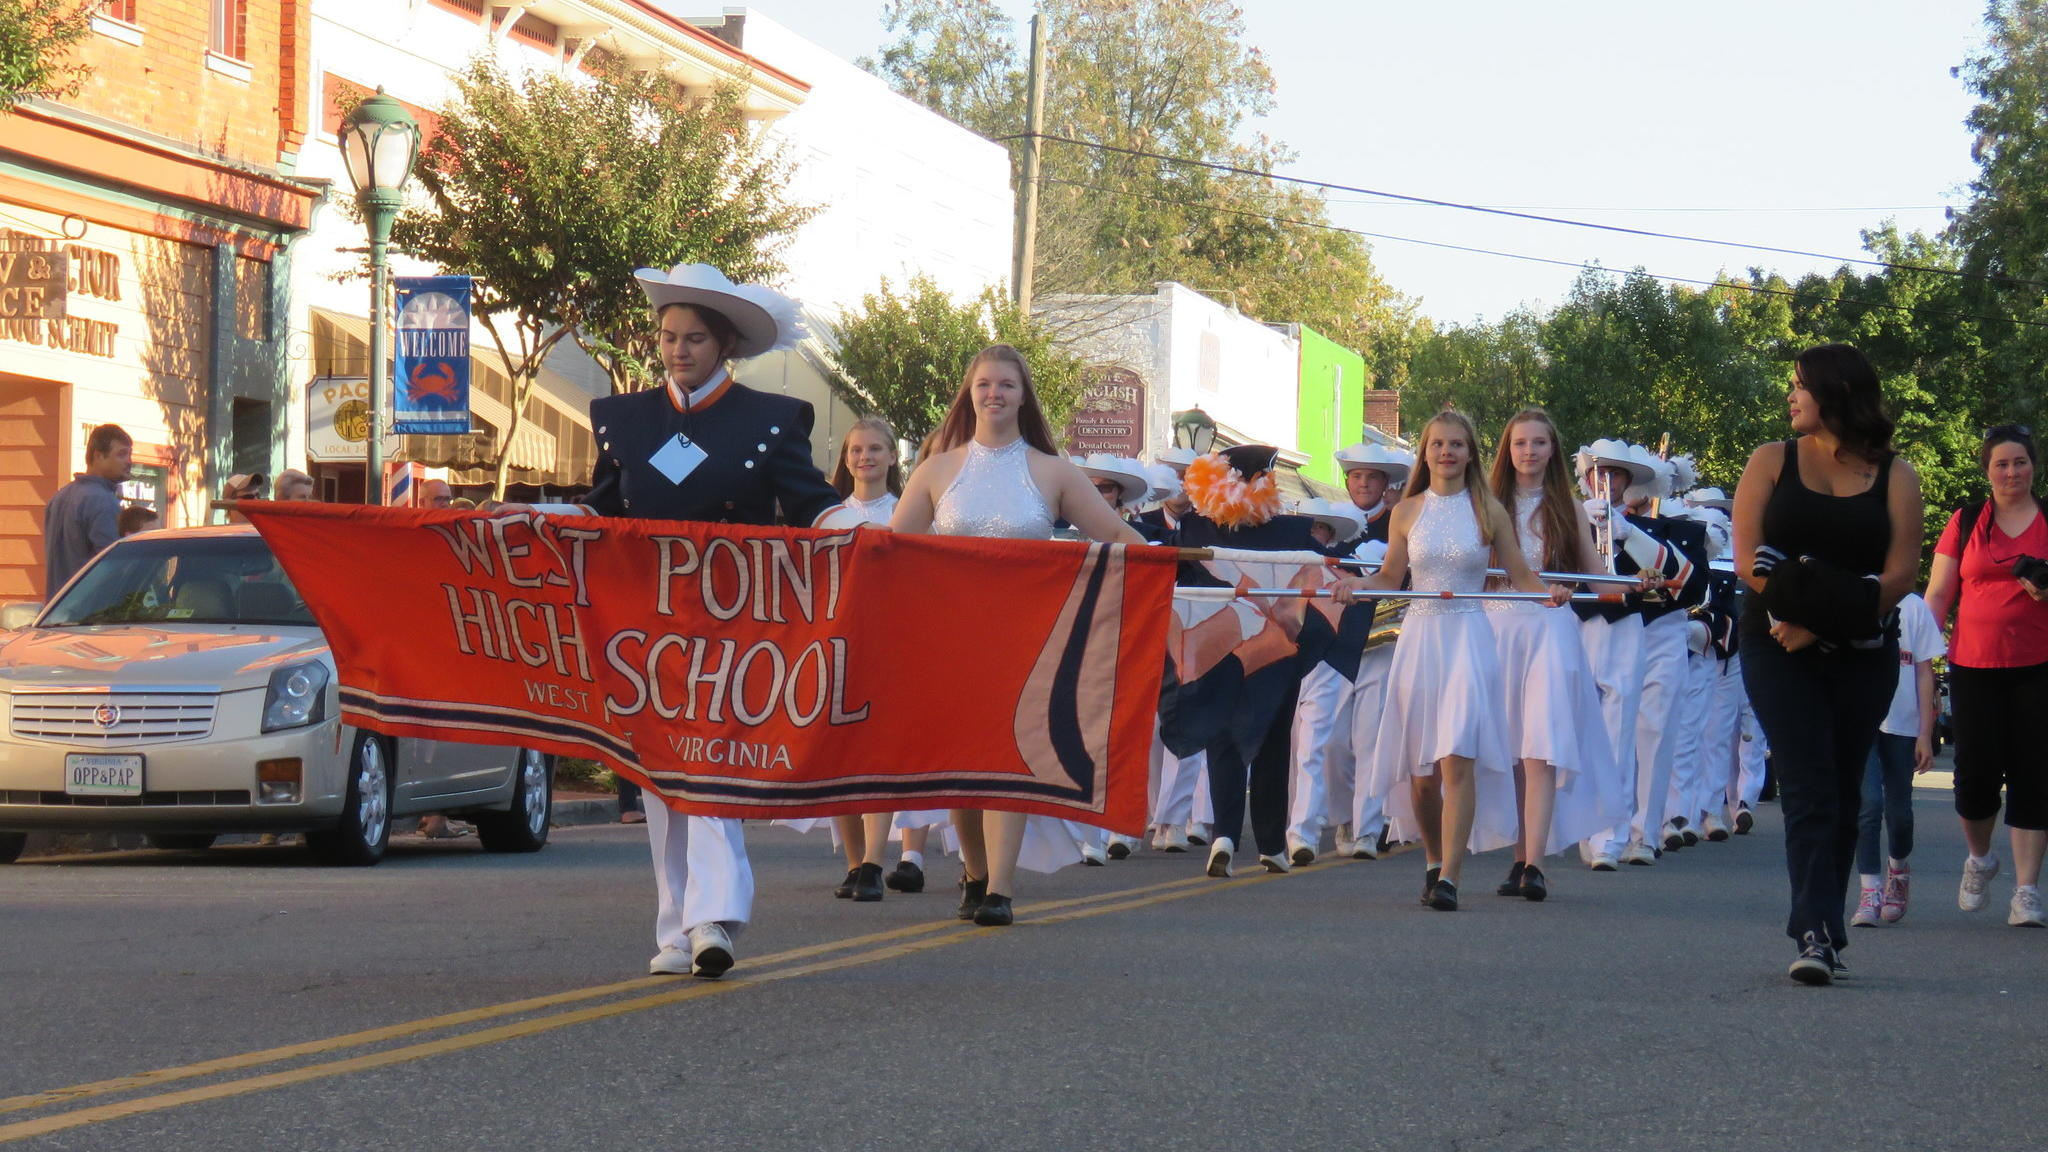 WPHS Celebrates Homecoming